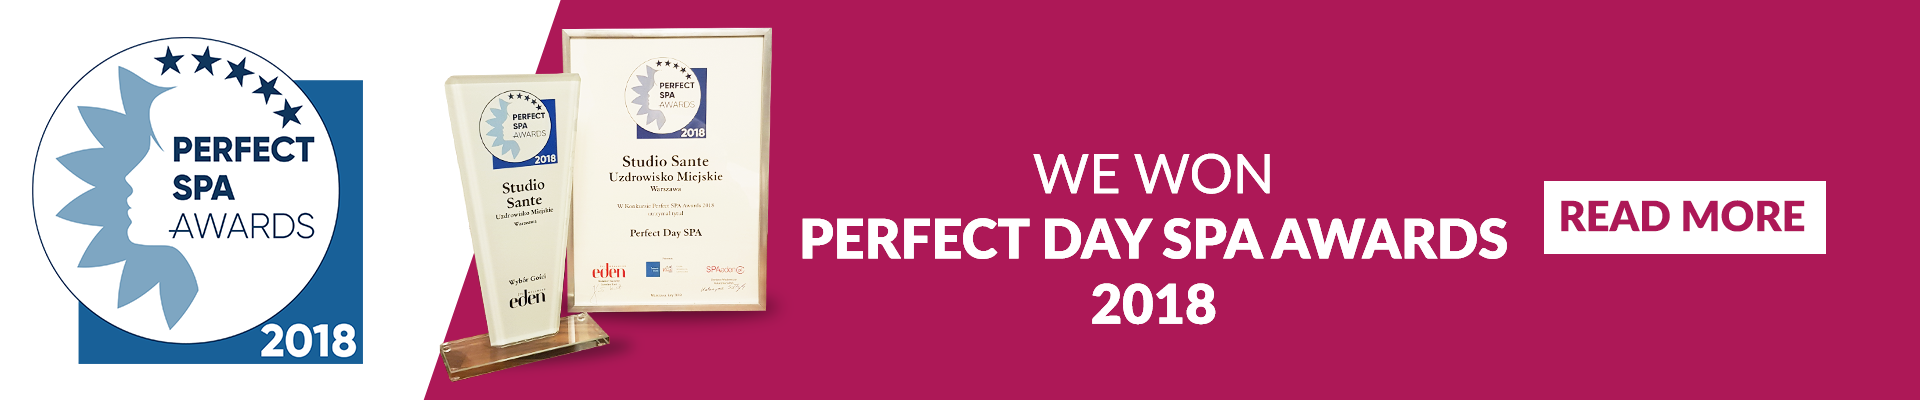 Perfect day spa 2018